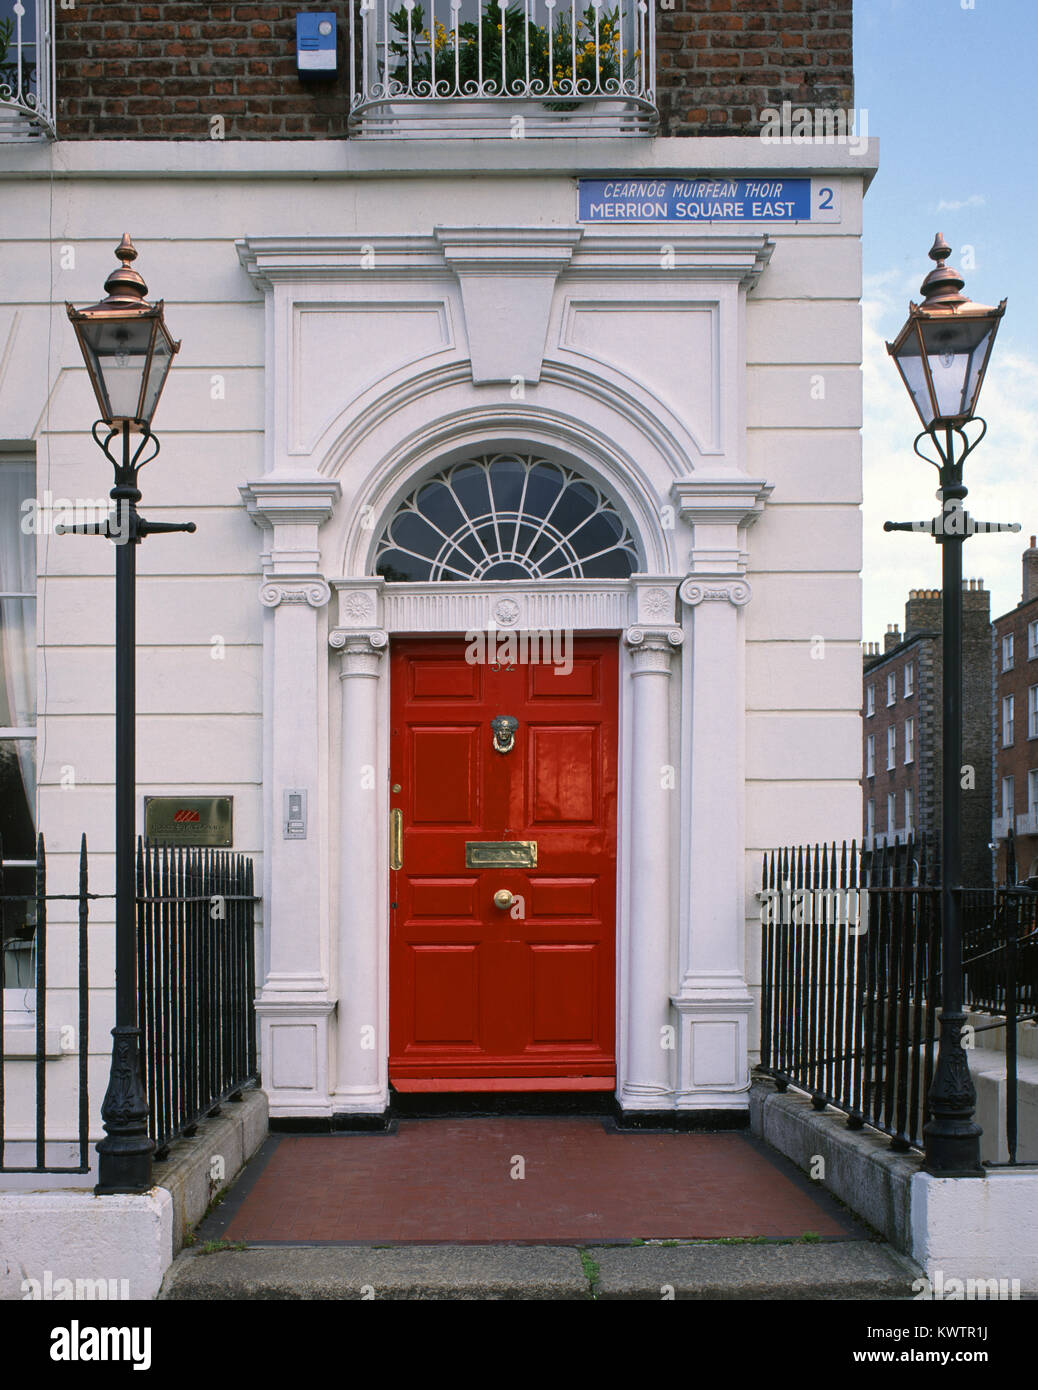 Red coloured door in Merrion Square Dublin County Dublin Ireland & Red coloured door in Merrion Square Dublin County Dublin Ireland ...